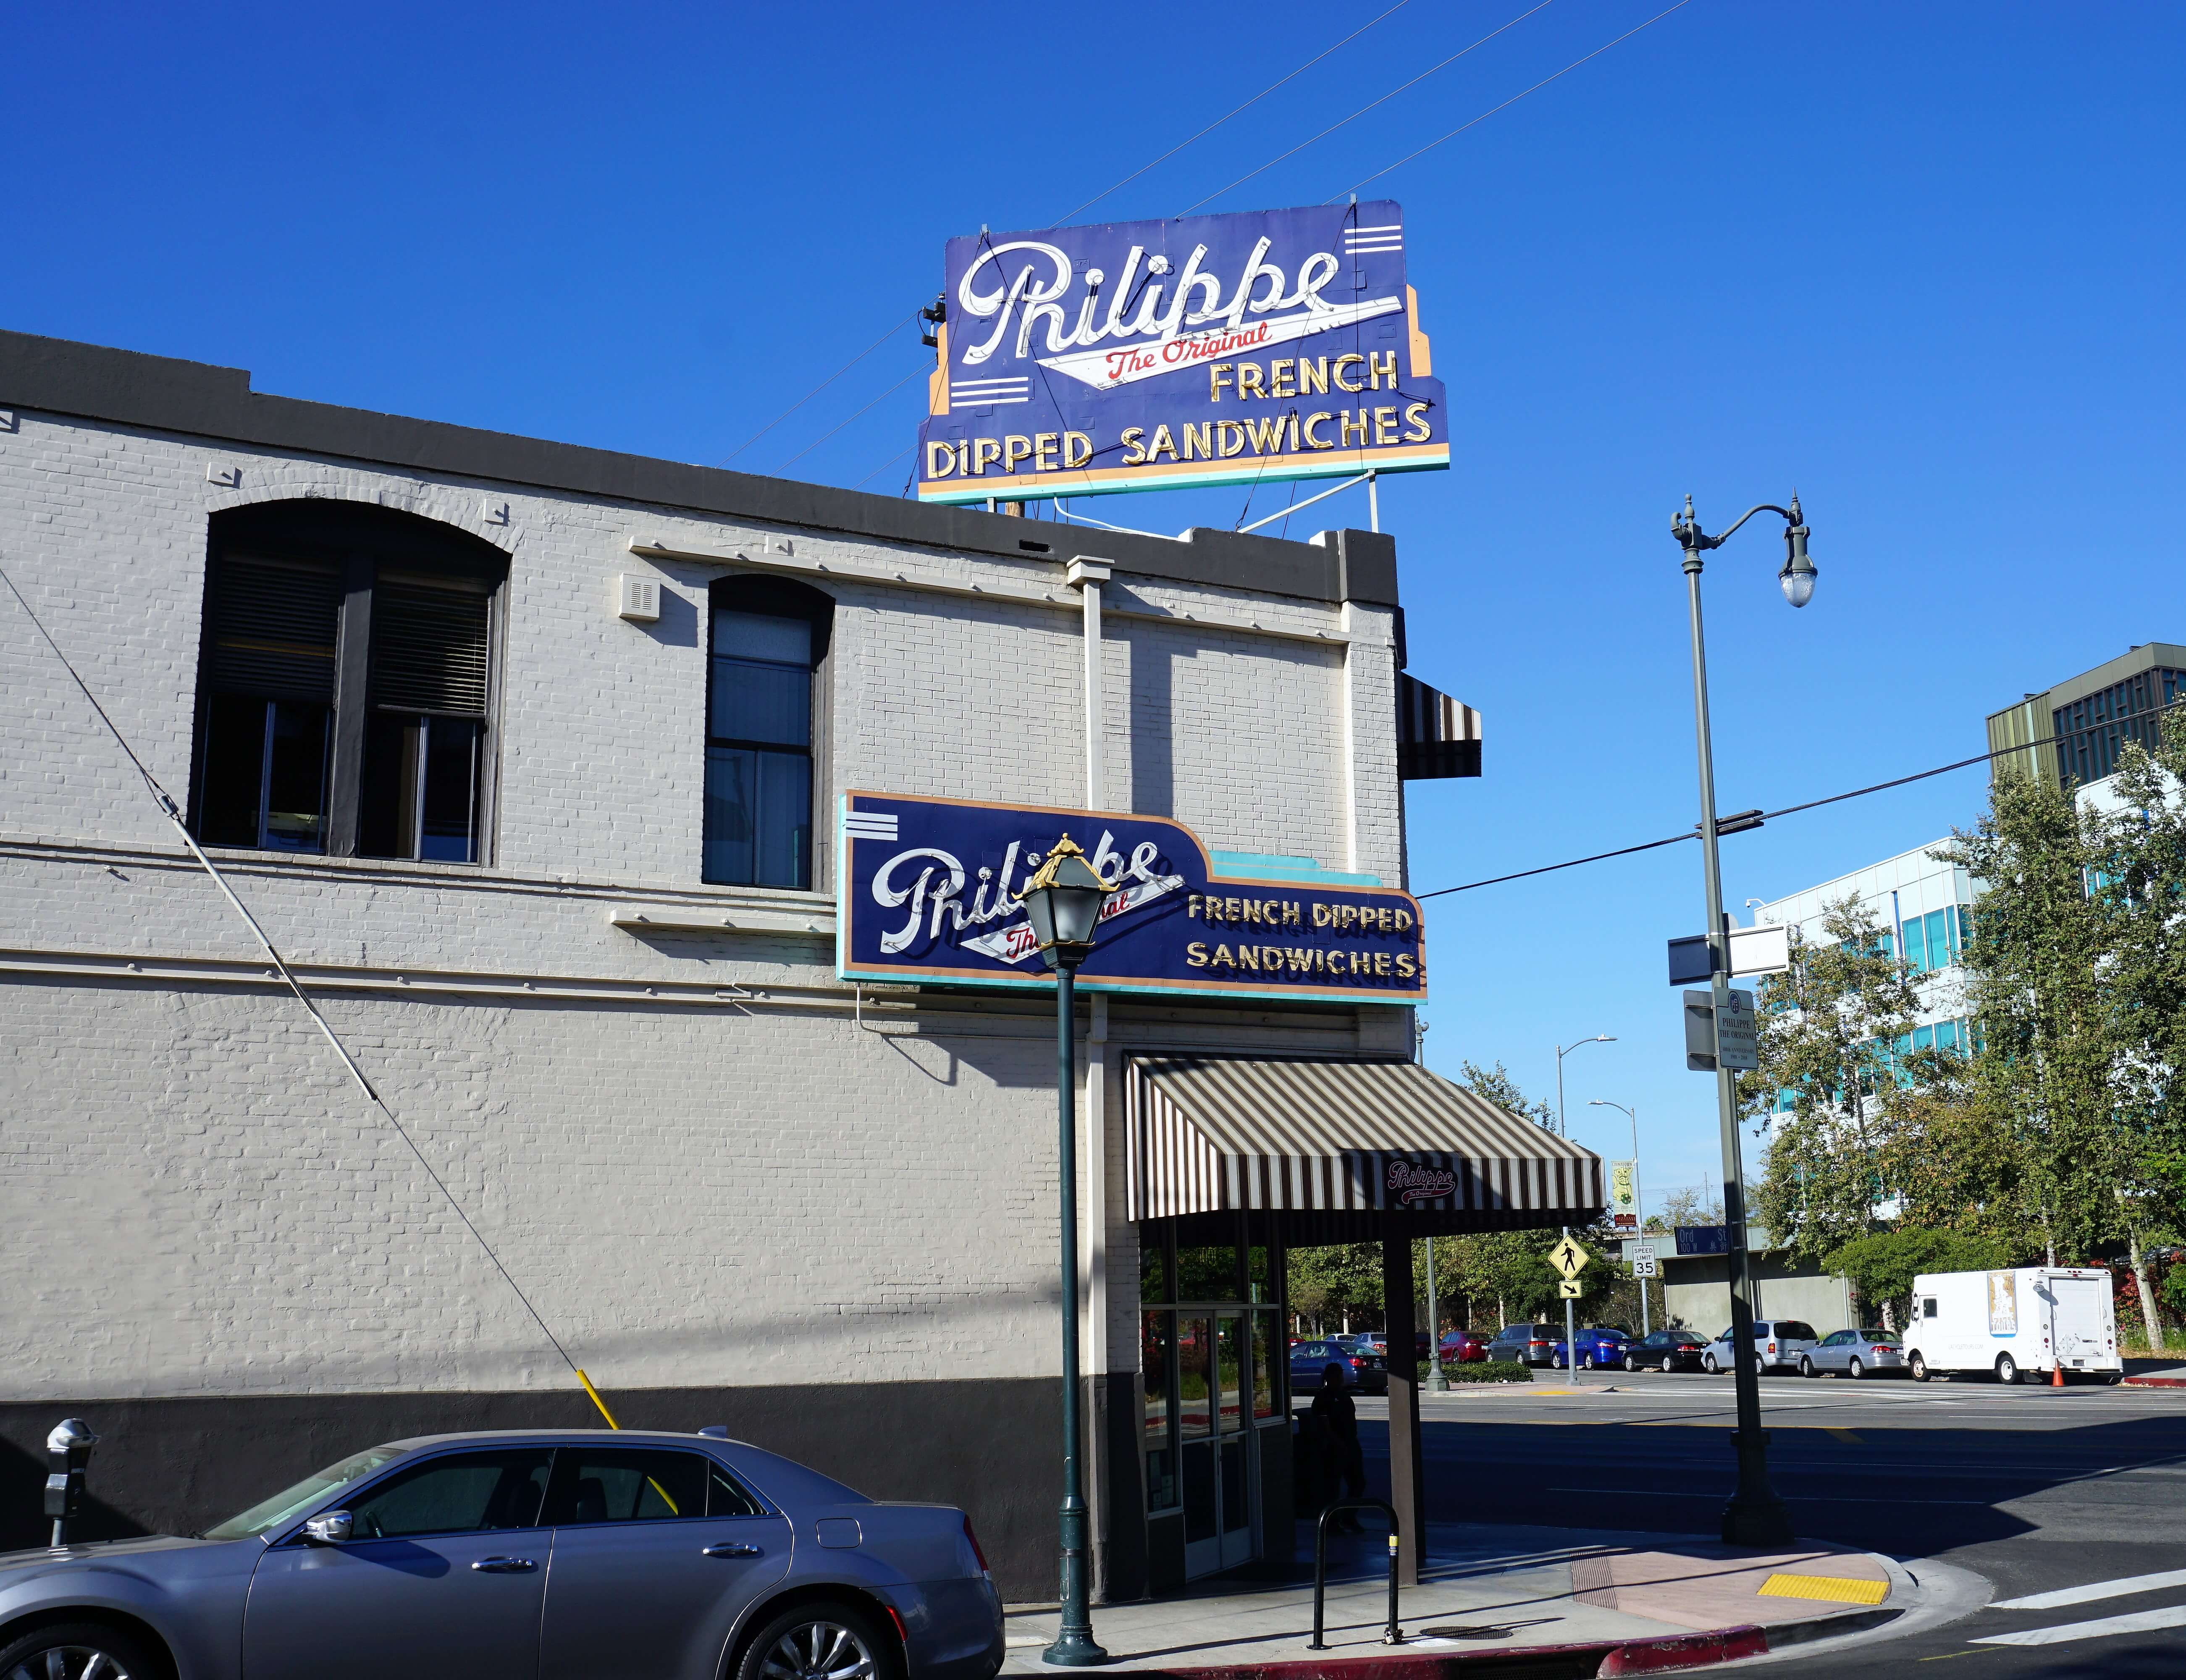 Philippe The Original Restaurant in Los Angeles